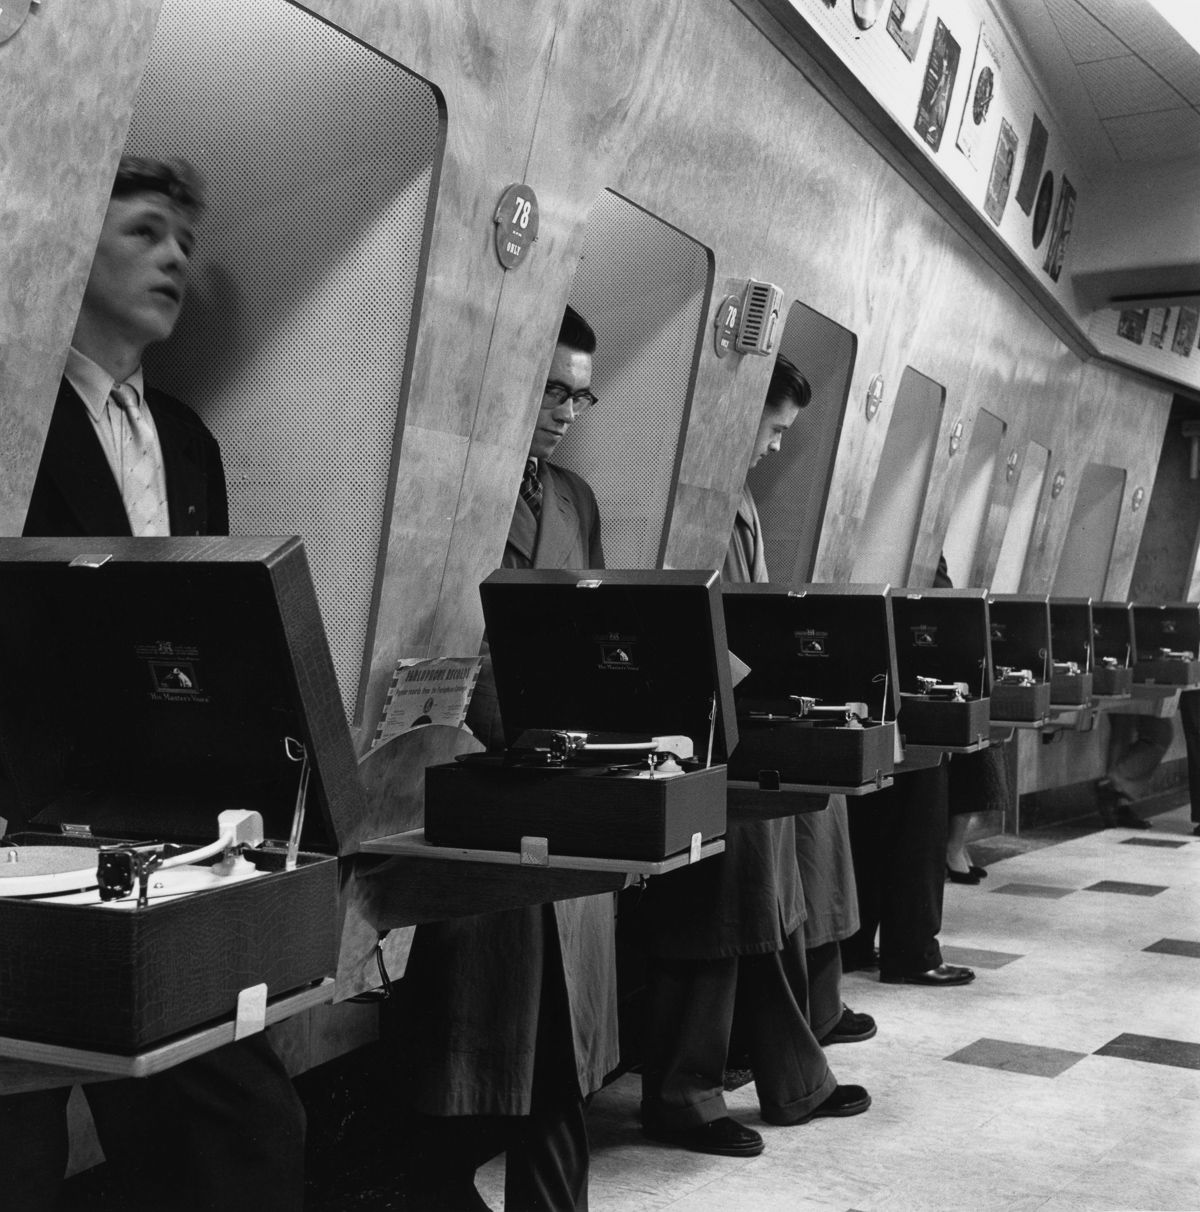 Customers at a London music shop listen to records in soundproof listening booths, 1955 / VINYL RECORD STUFF Old Pictures, Old Photos, Vintage Photos, Raquel Welch, Music Store, Sound Proofing, Vintage Photography, White Photography, Historical Photos